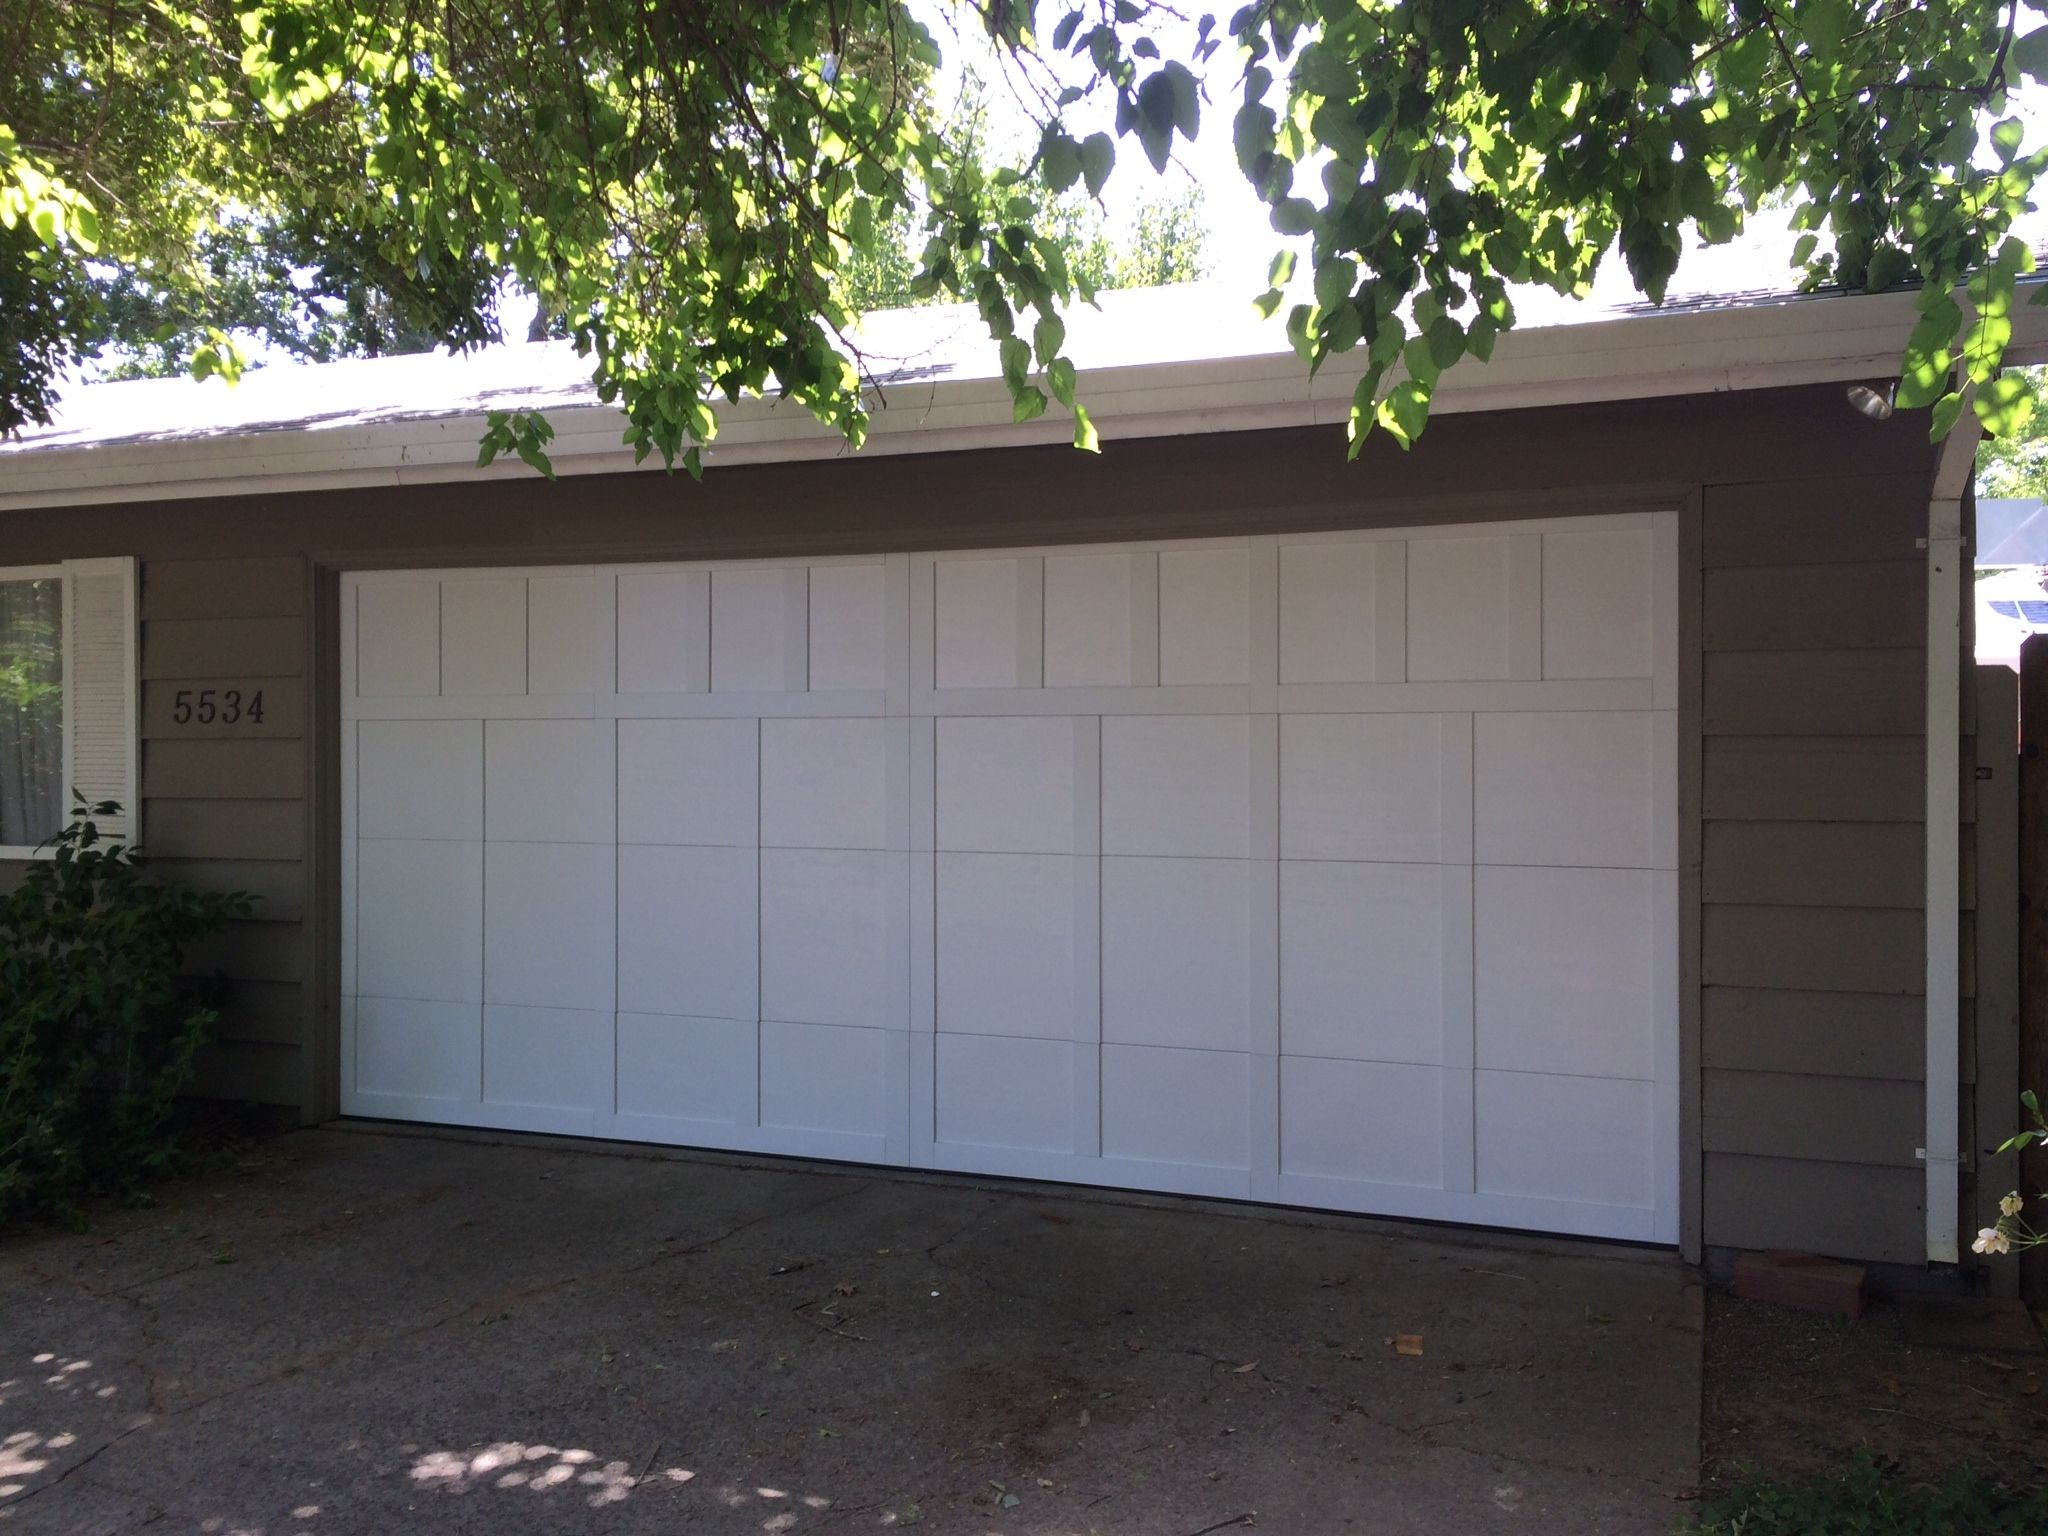 of top size doors overhead garage full openers rated arvada large a door denver